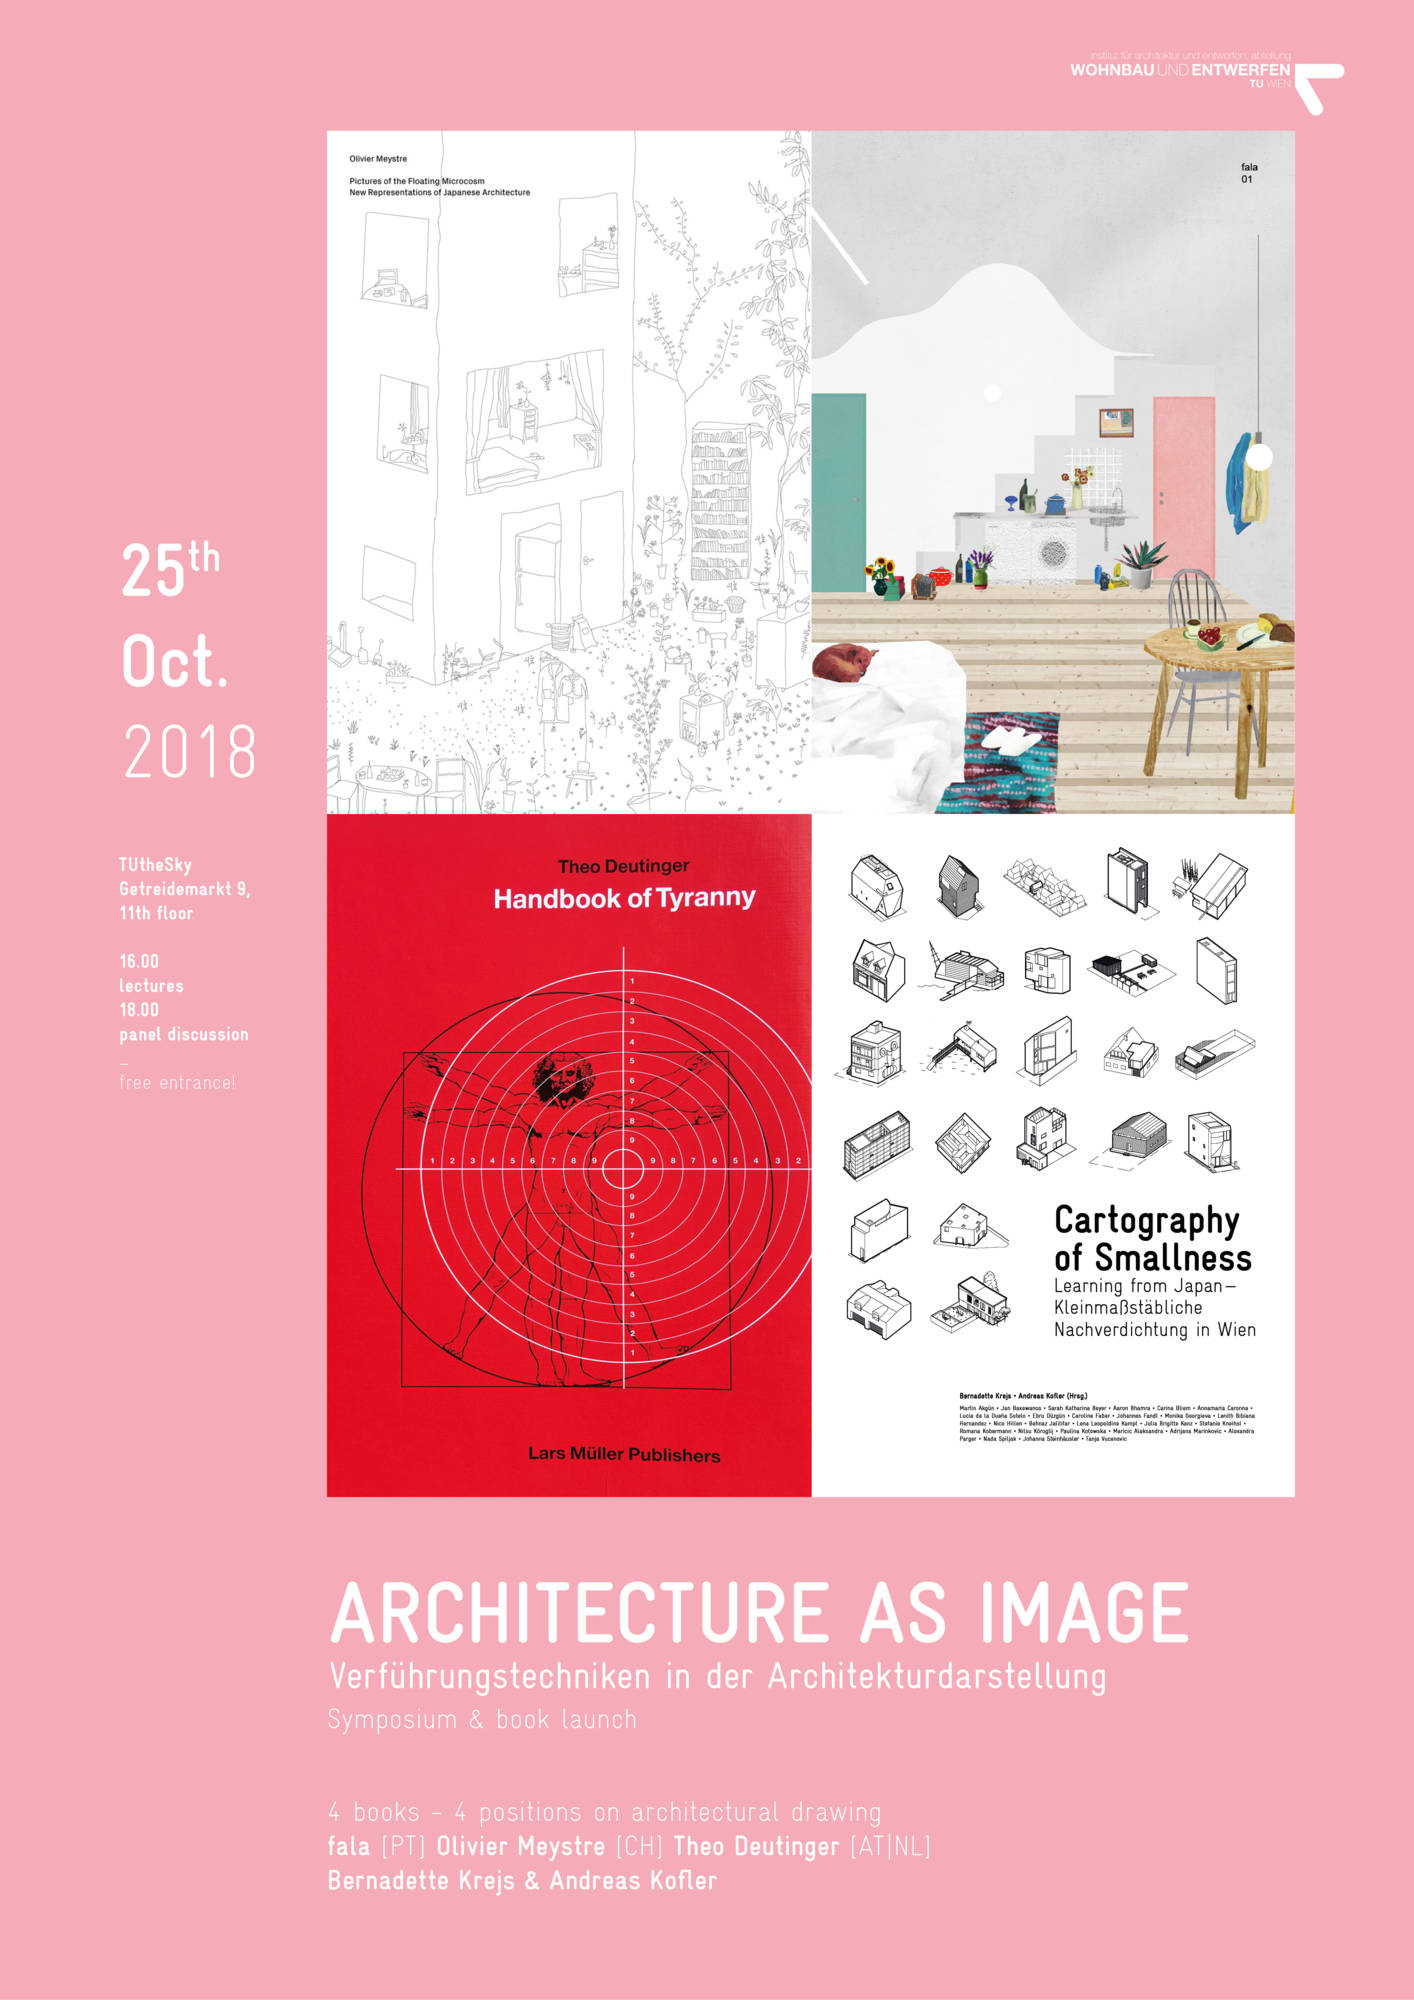 ARCHITECTURE AS IMAGE - Symposium & book launch - TU Wien